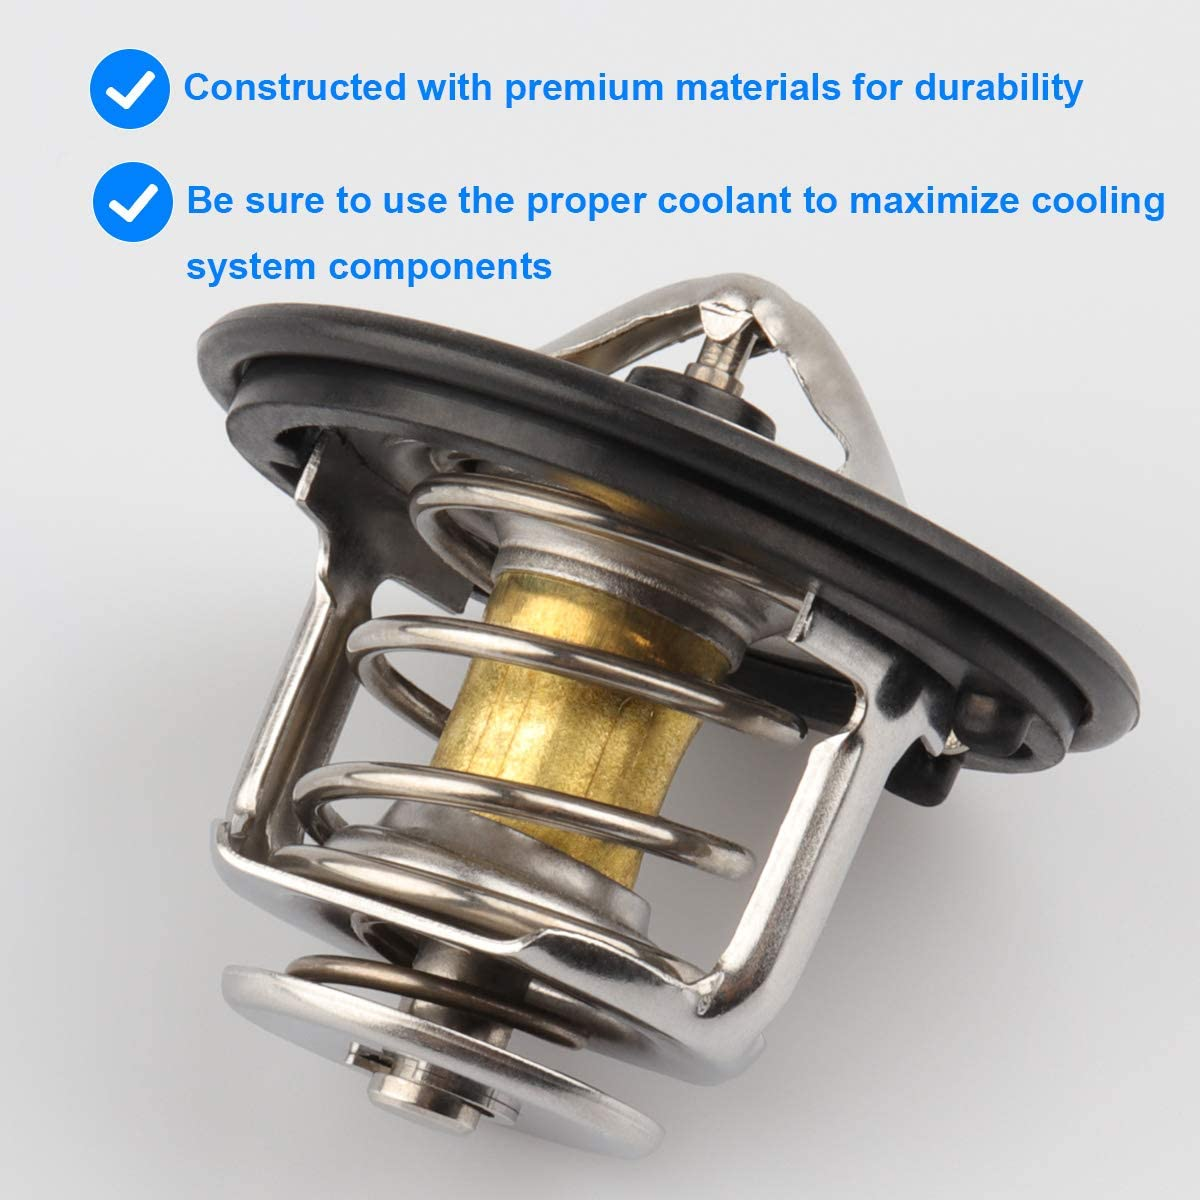 Engine Thermostat Assembly Replaces 19301-RNA-315 19301RNA315 19301-PAA-306 19301-PLC-315 Compatible with 2006-2015 Honda Civic 2016-2017 Honda HR-V by Sikawai